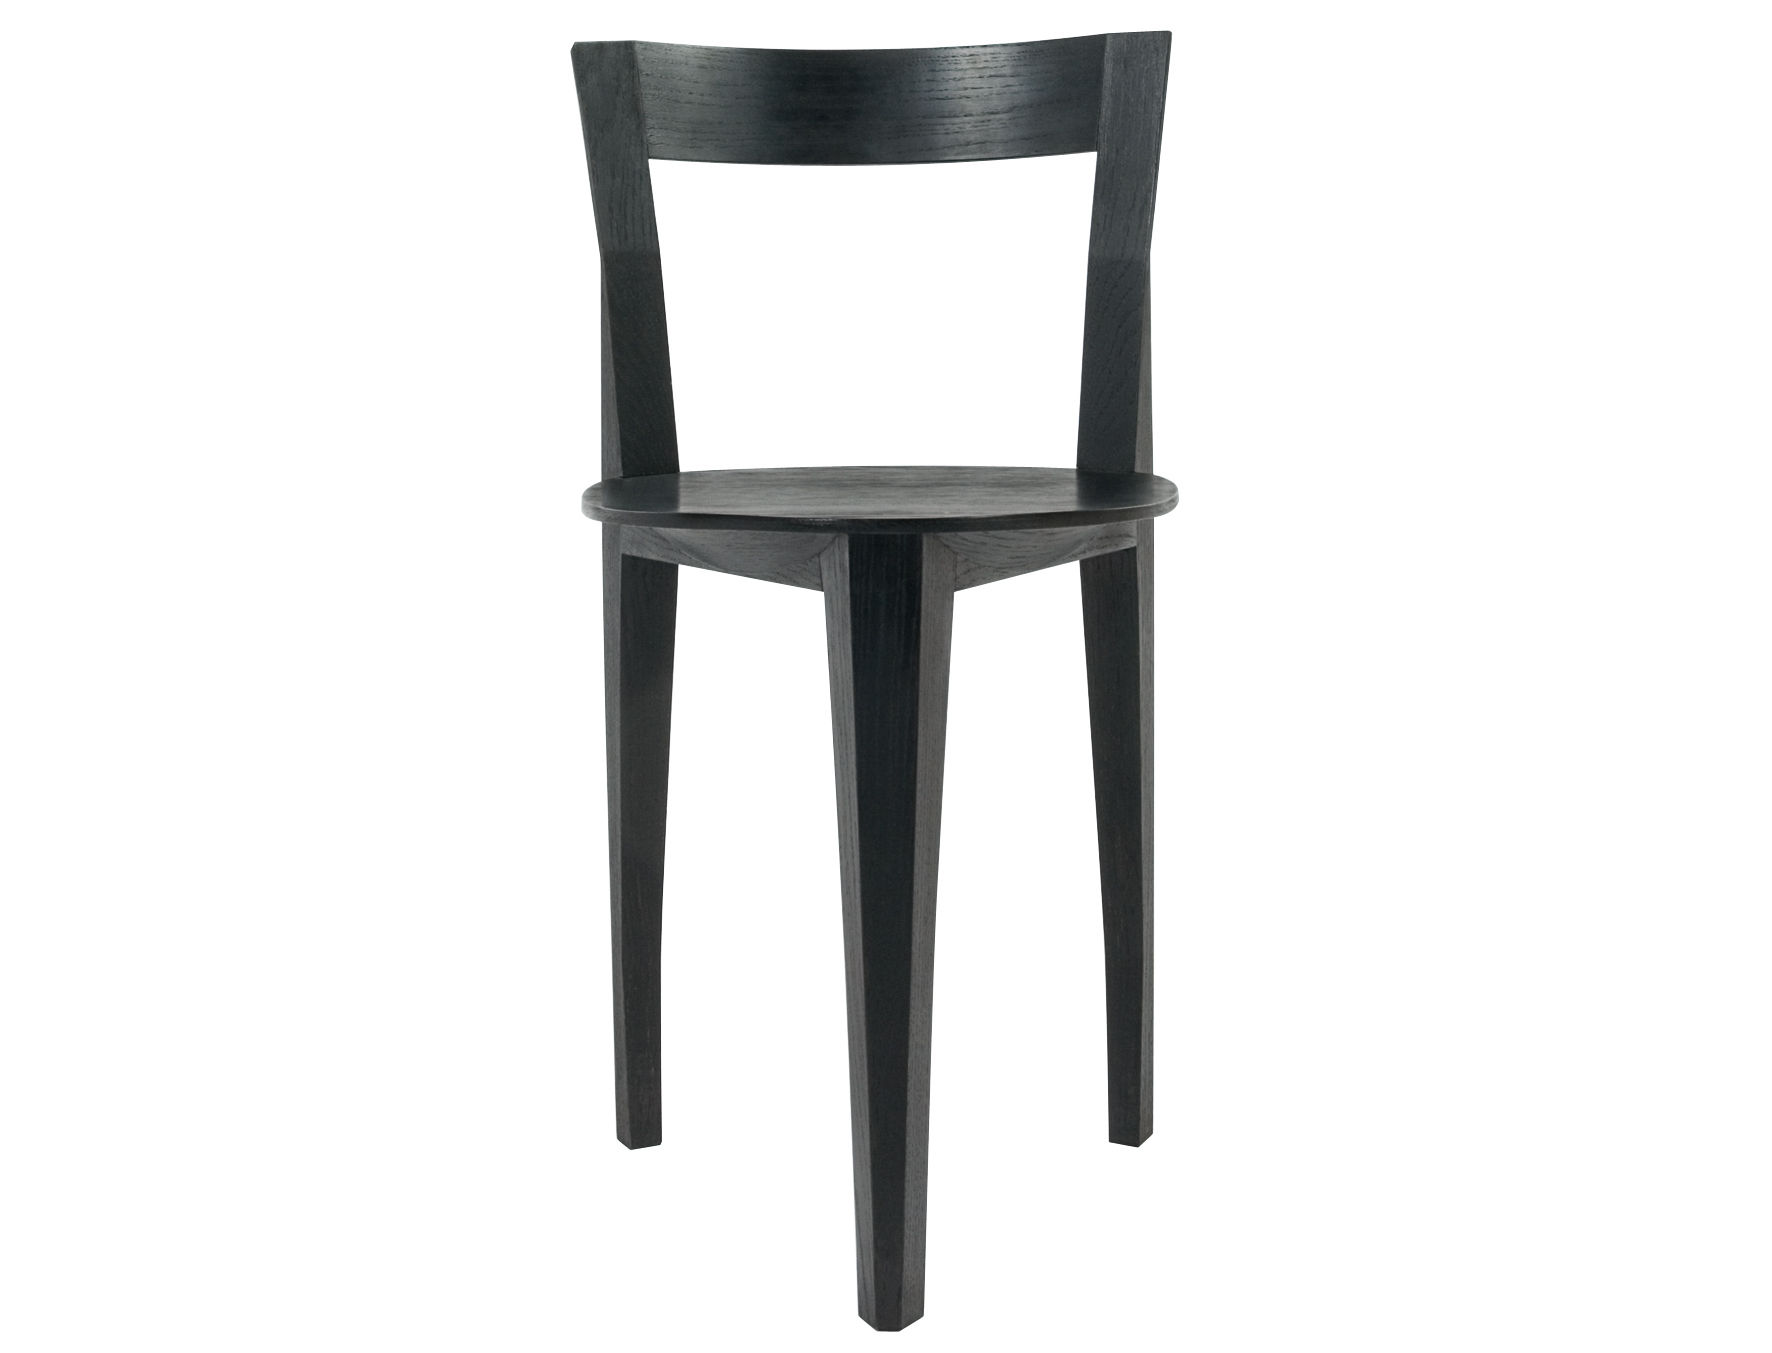 Furniture - Chairs - Petite Gigue Chair - Wood by Moustache - Black - Lacquered oak